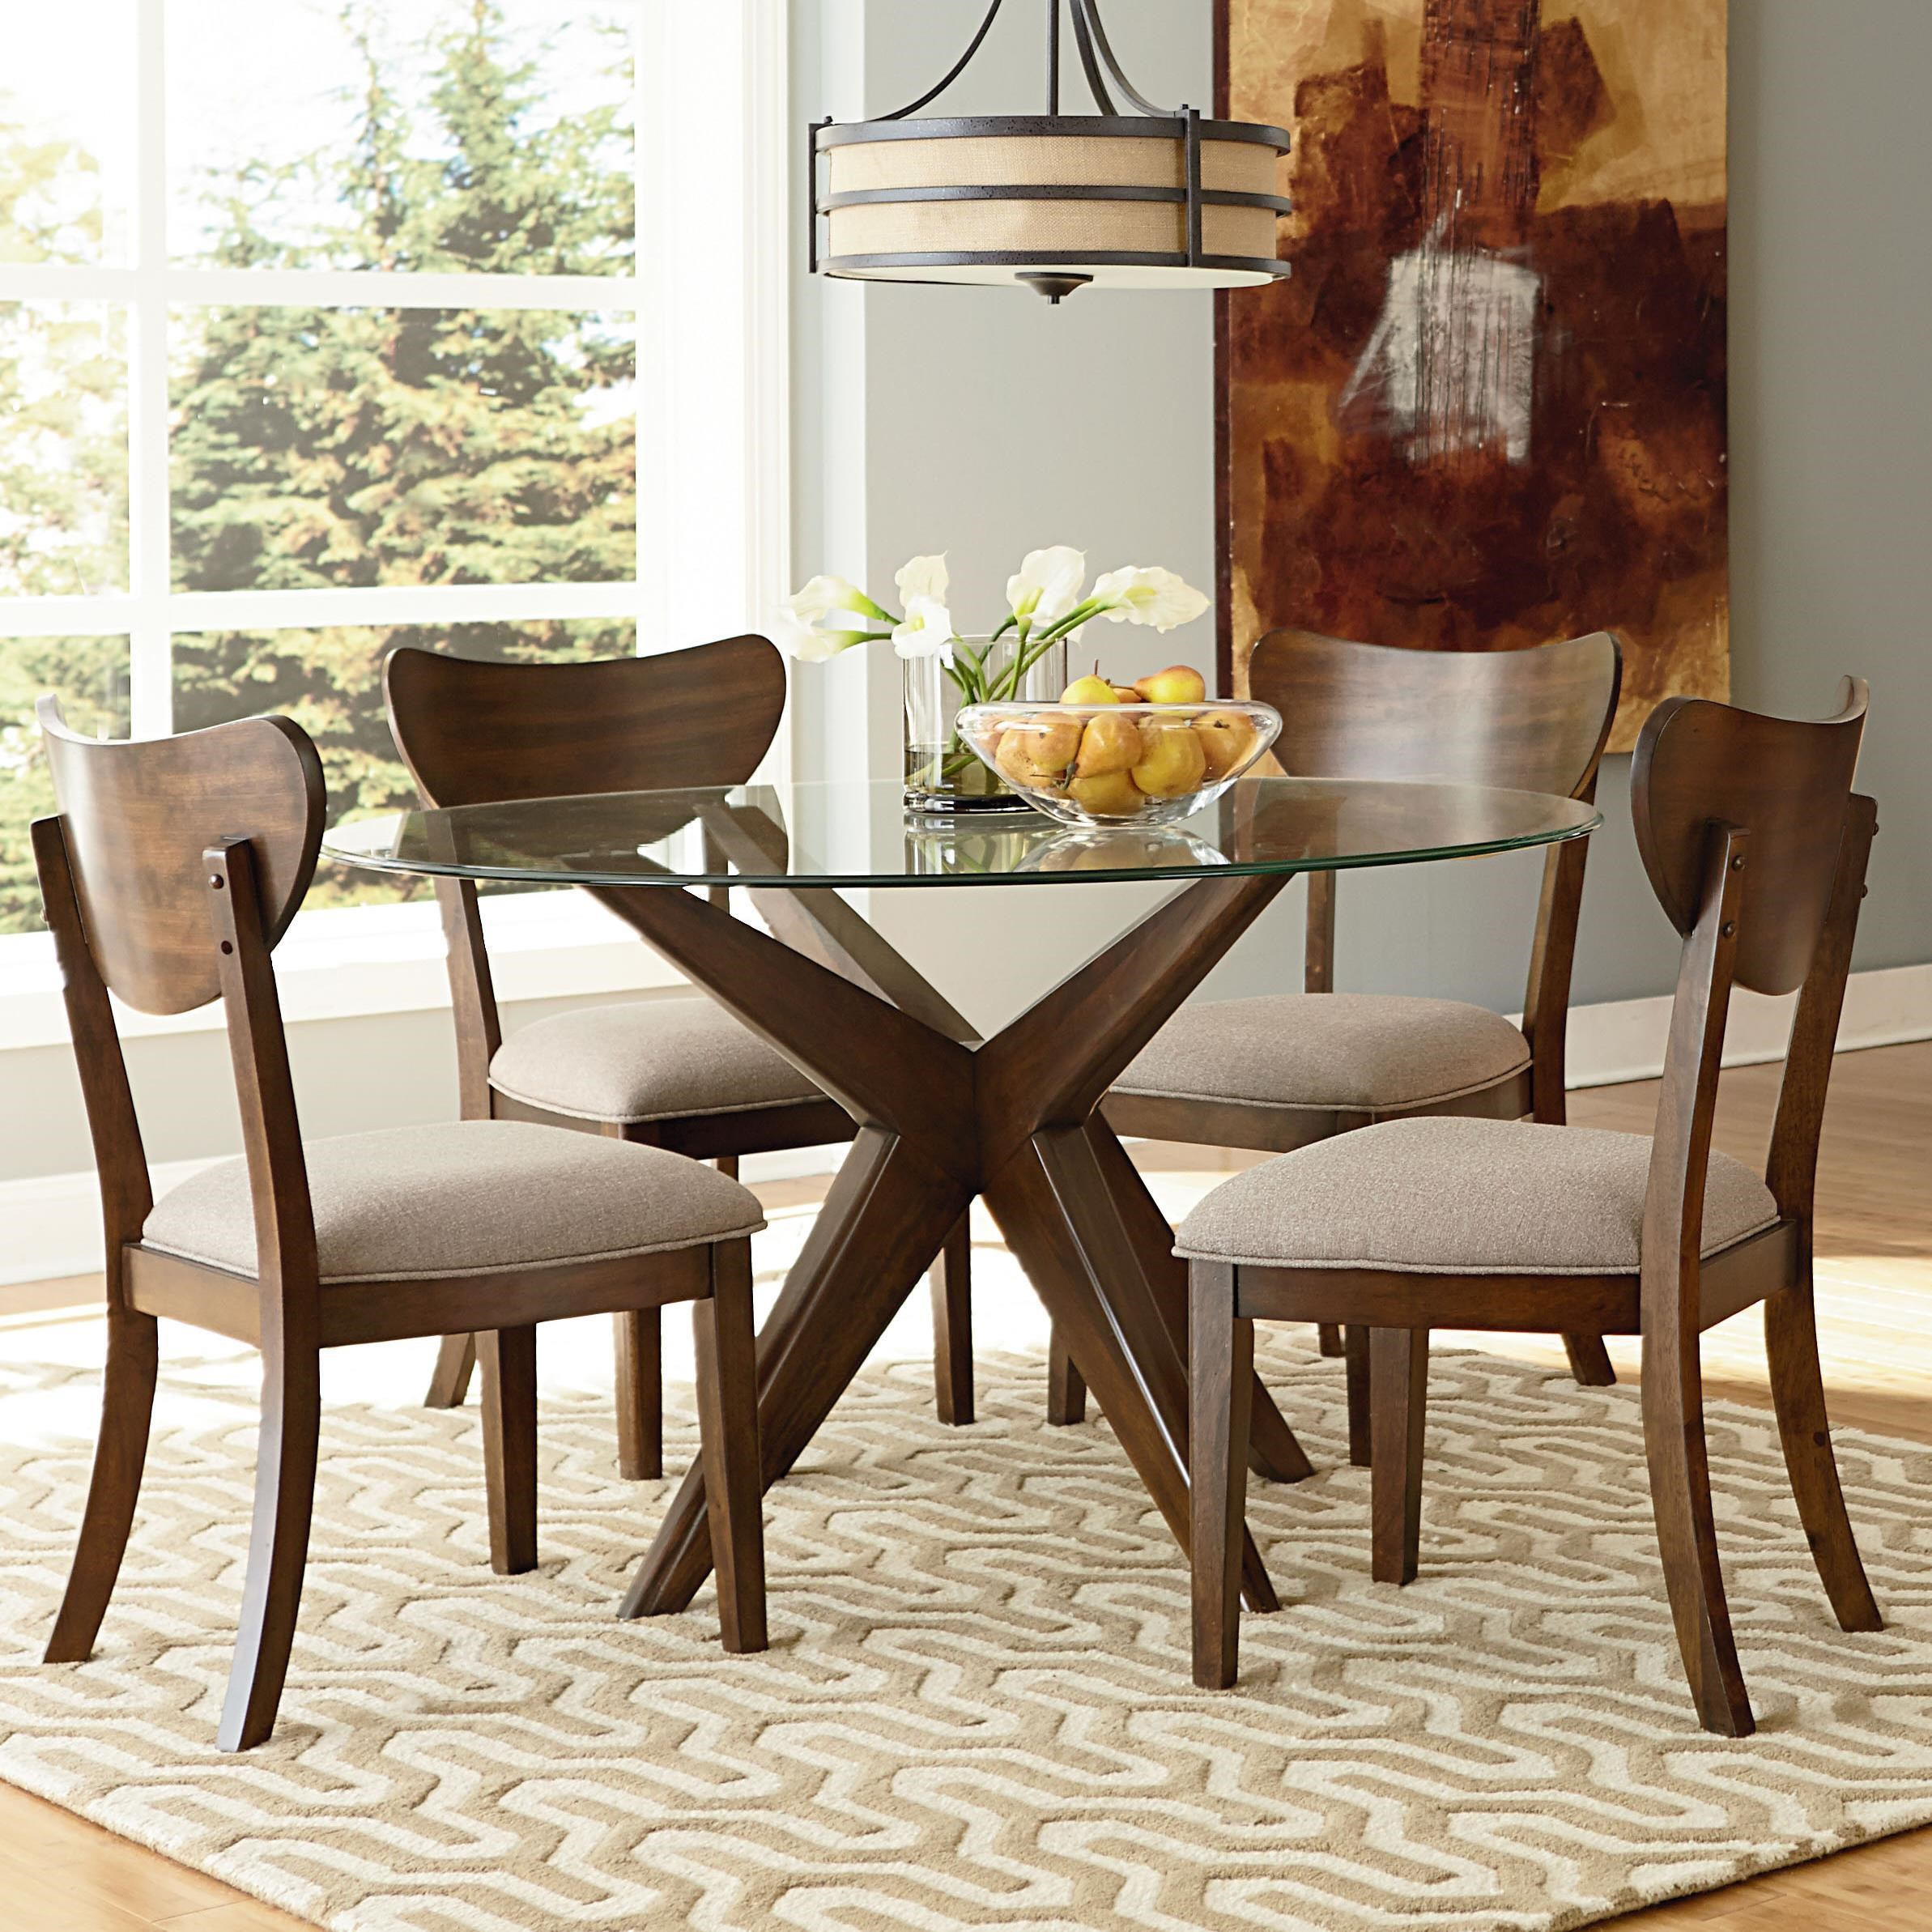 Dining 5 piece set standard furniture roxbury 48 quot round glass table